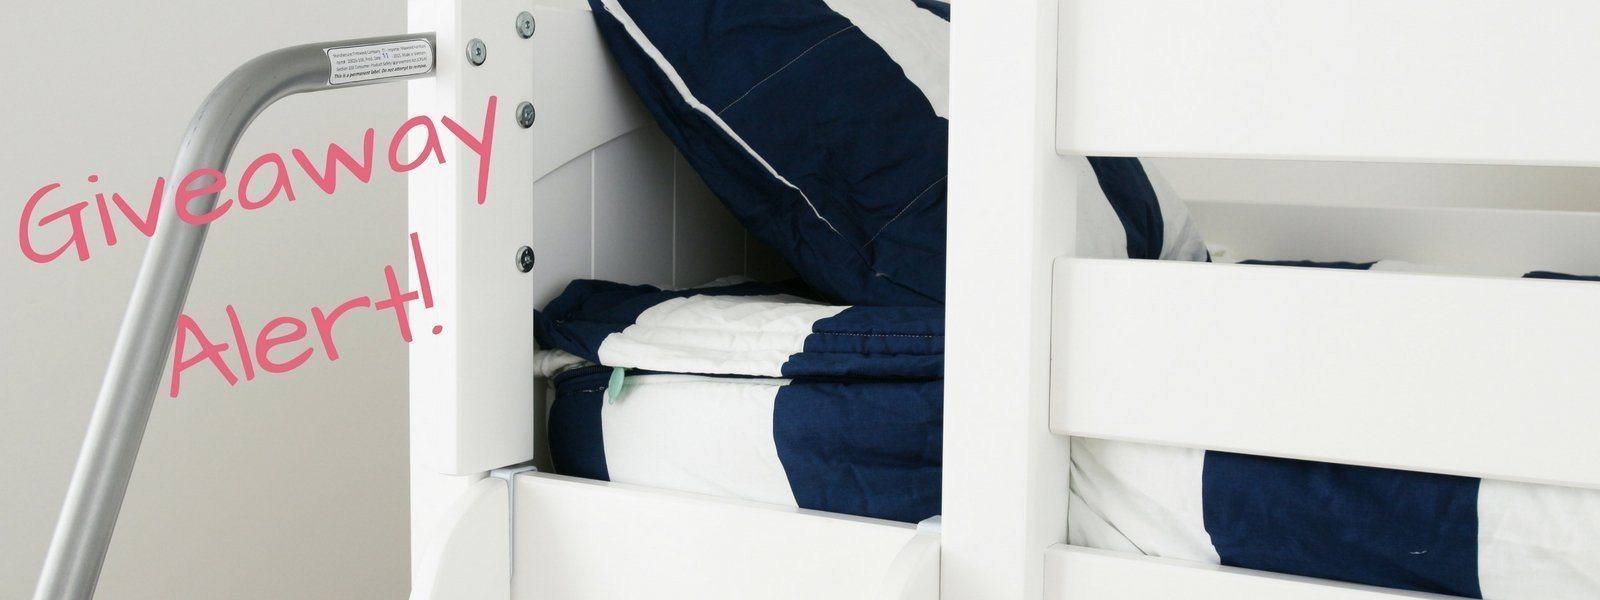 GIVEAWAY! Win a Low Loft Bed & Beddy's Set!